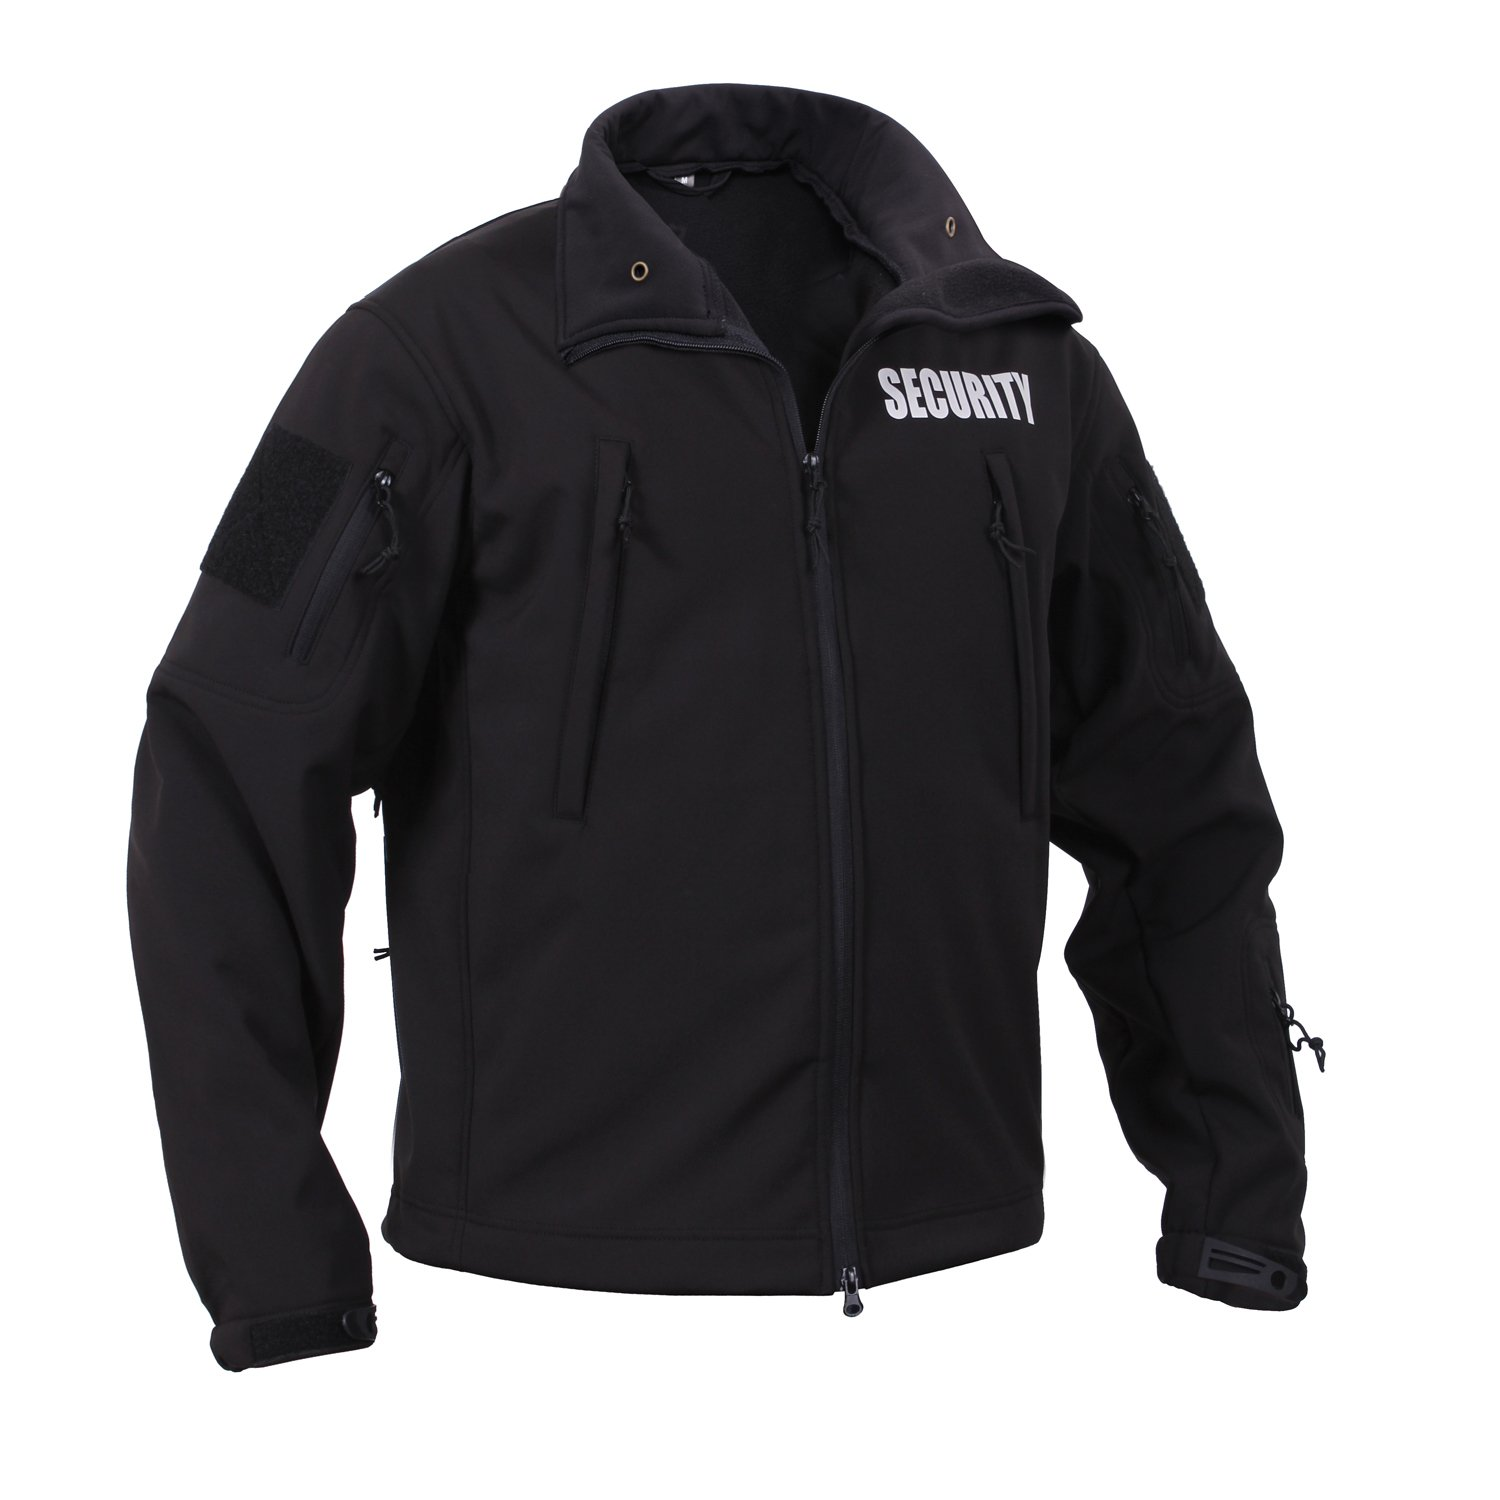 Rothco Special Ops Softshell Security Jacket, Large by Rothco